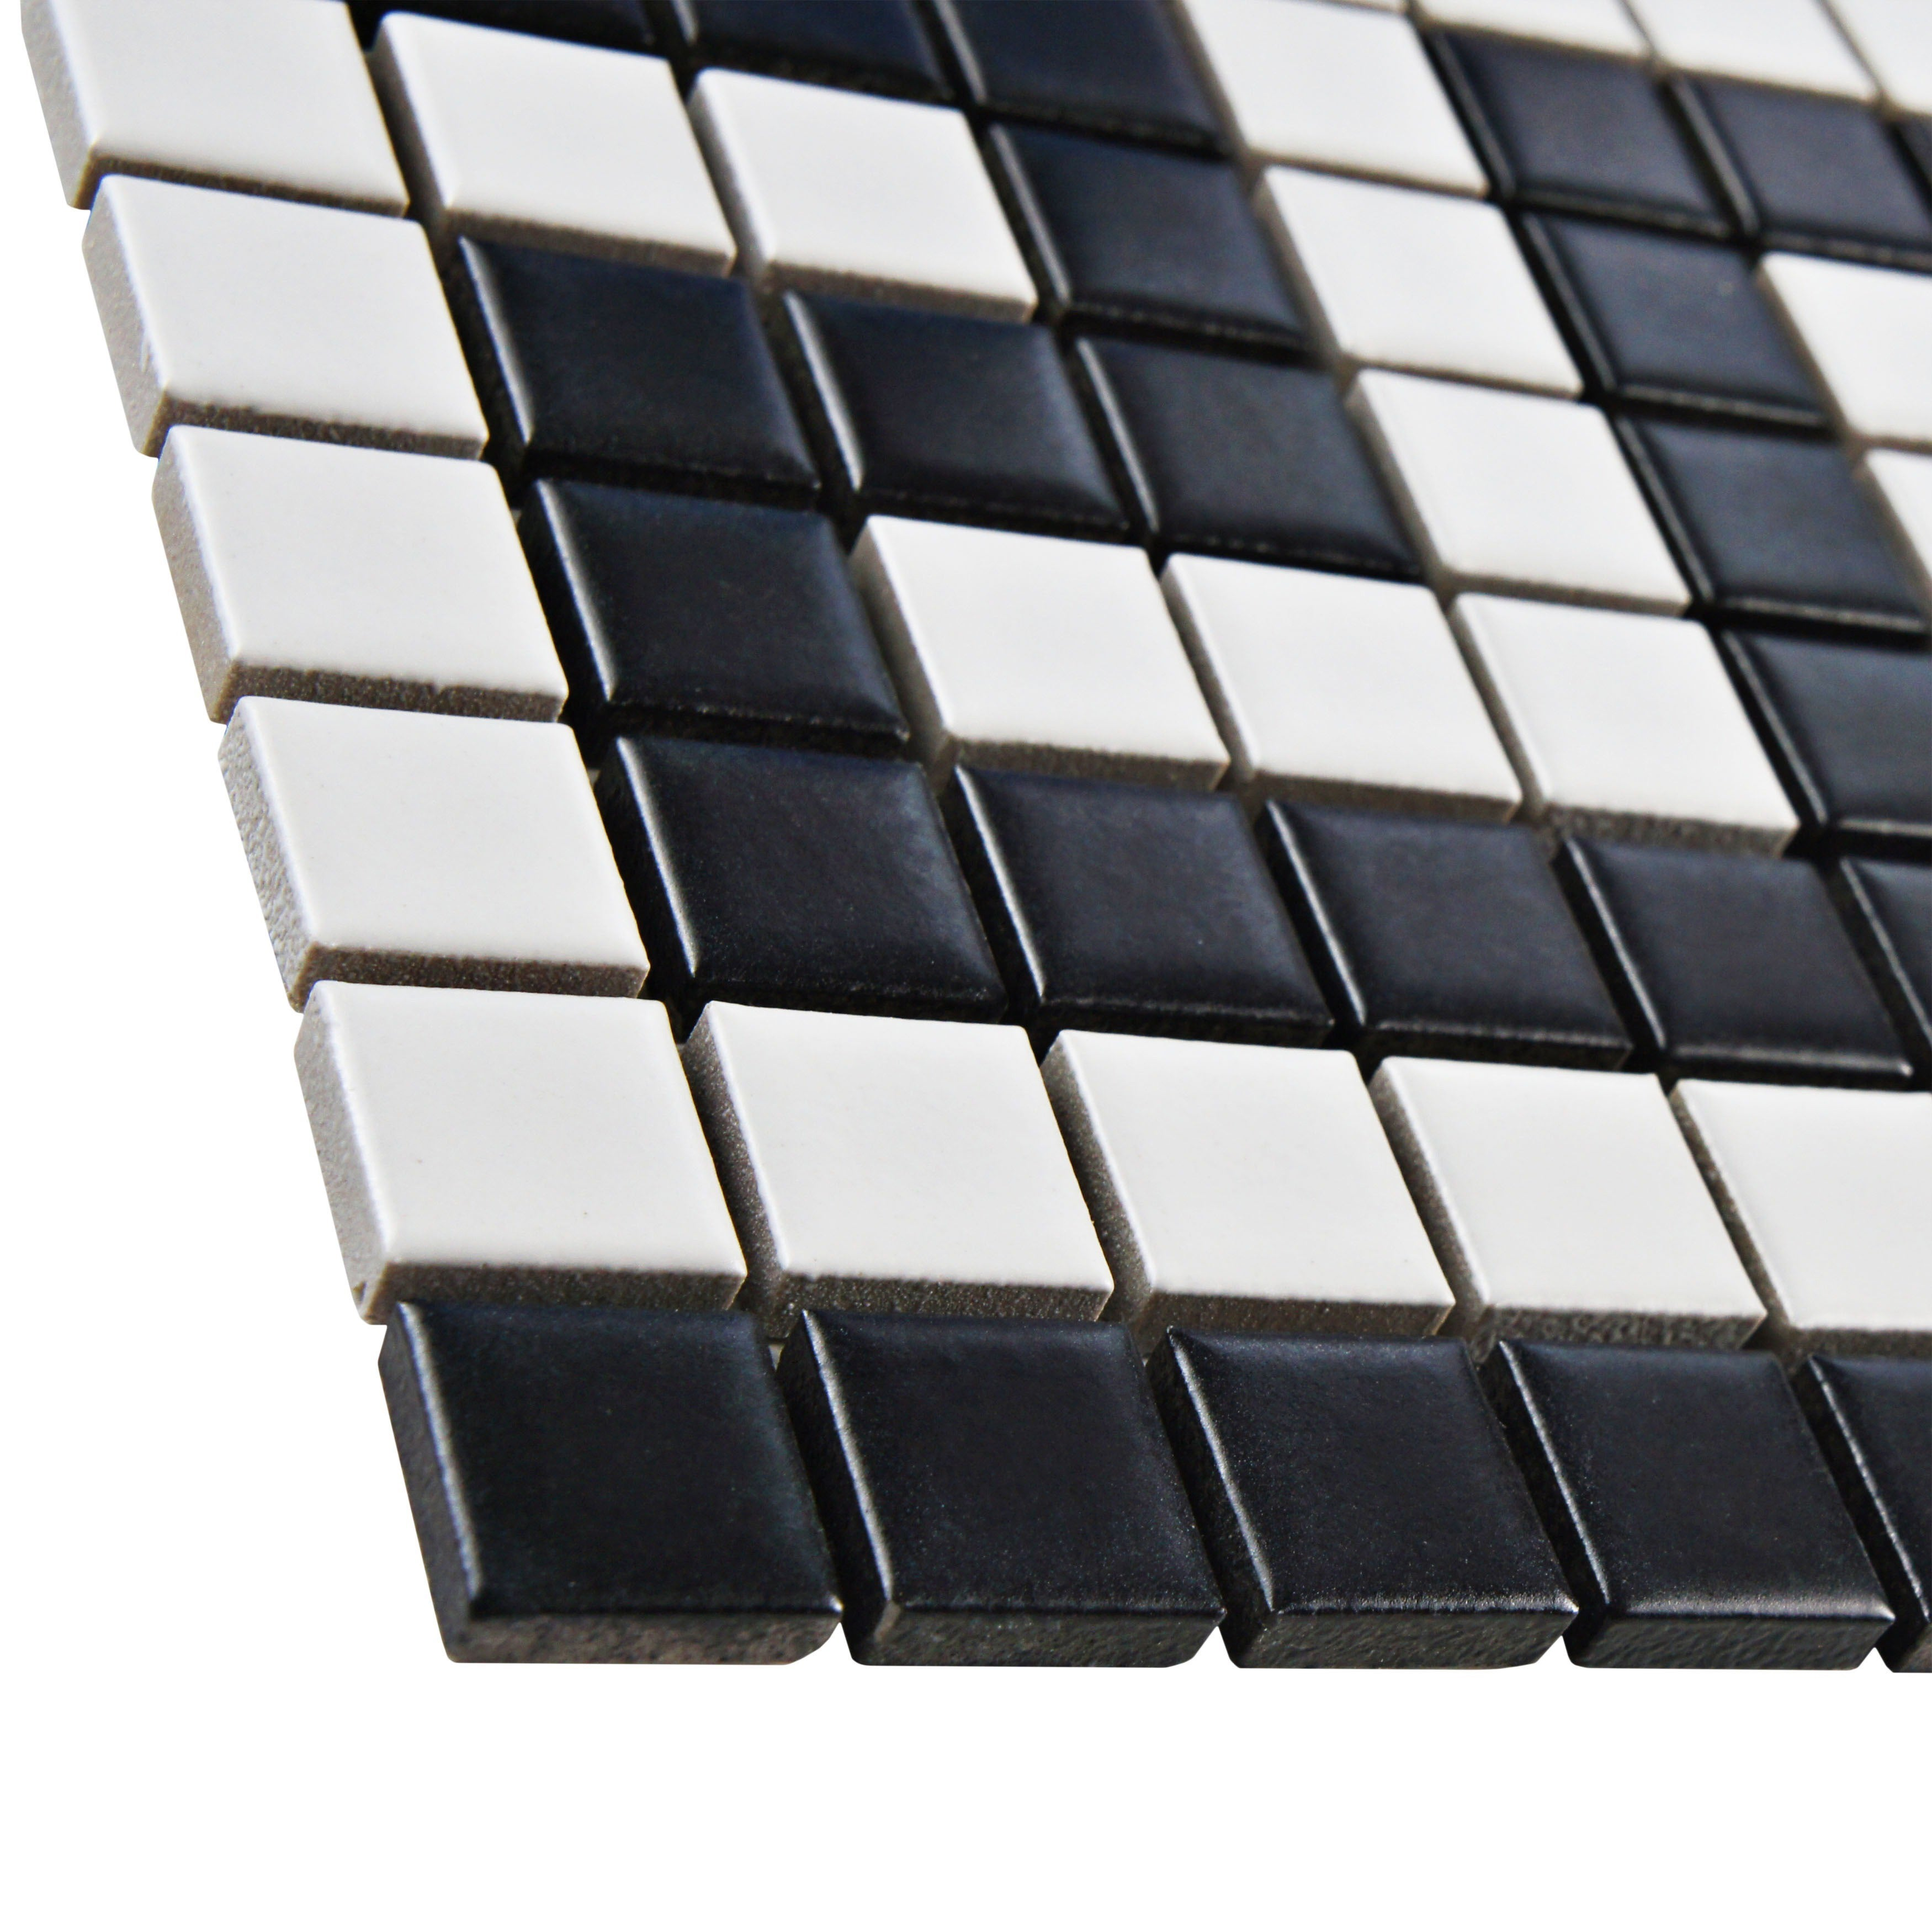 Shop Somertile 8x10 5 Inch Victorian Greek Key Matte White And Black Border Porcelain Mosaic Floor And Wall Tile 10 Tiles Free Shipping Today